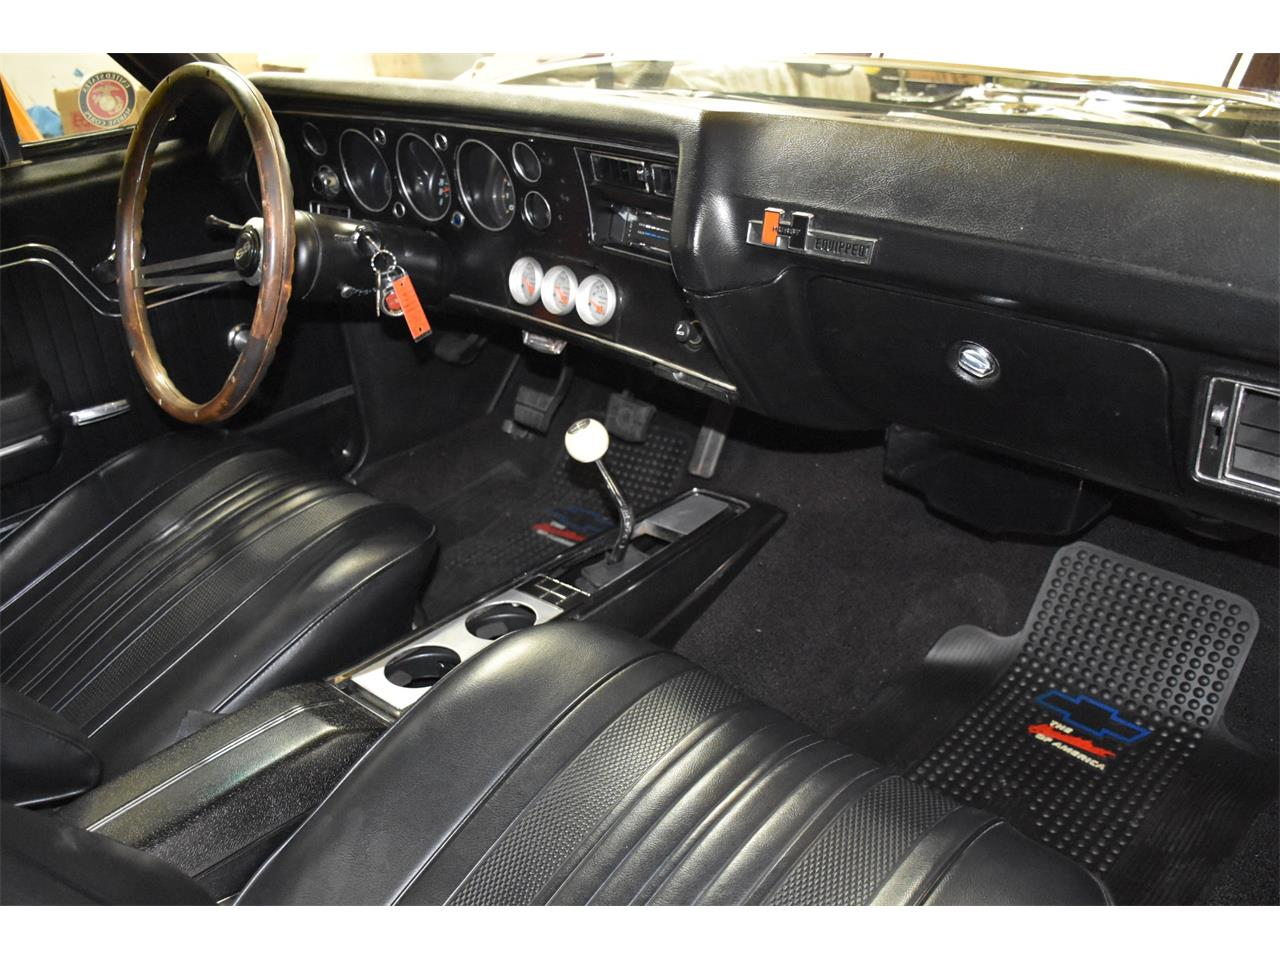 Large Picture of 1970 Chevrolet El Camino located in Venice Florida Auction Vehicle - MDAK